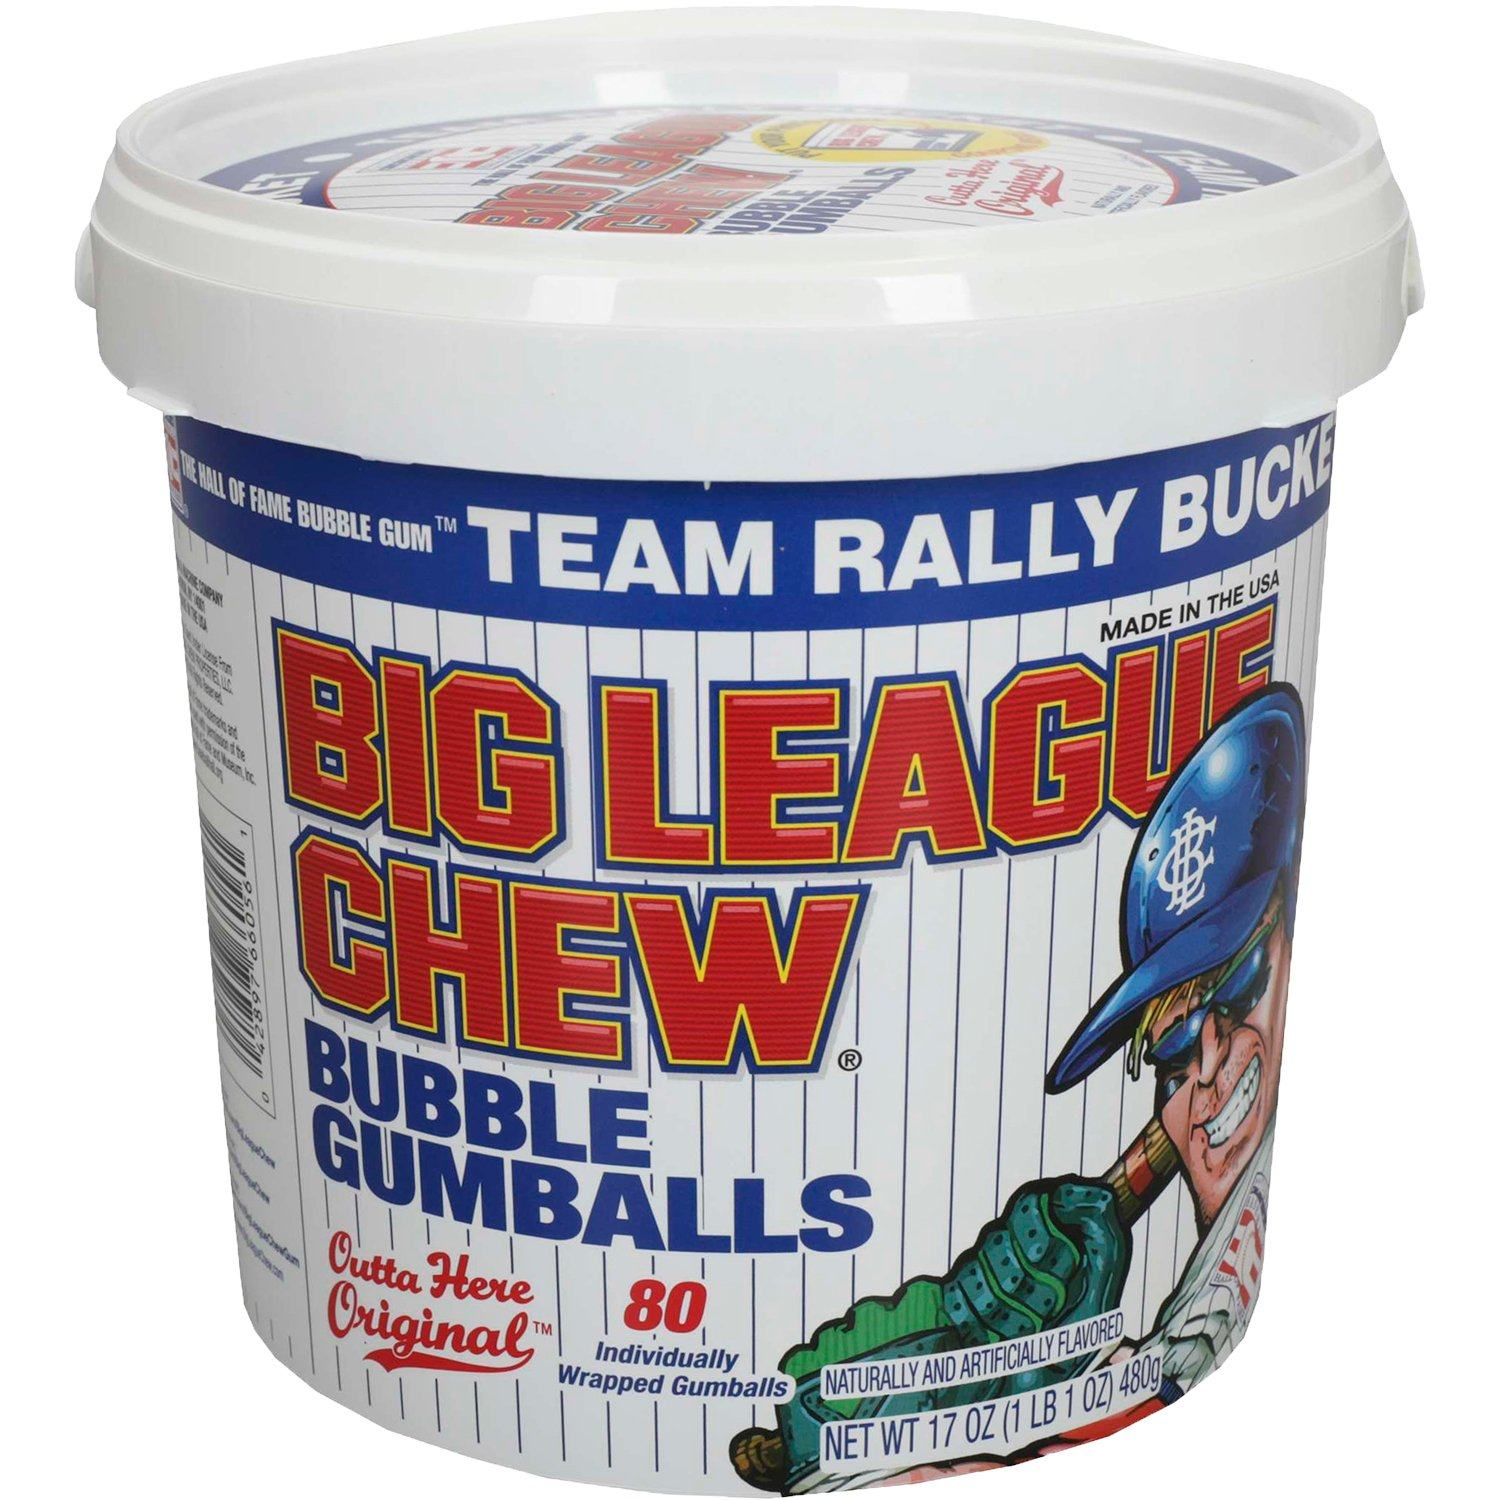 Big League Chew Bubble Gum Big League Chew Original 80 Gumballs Bucket